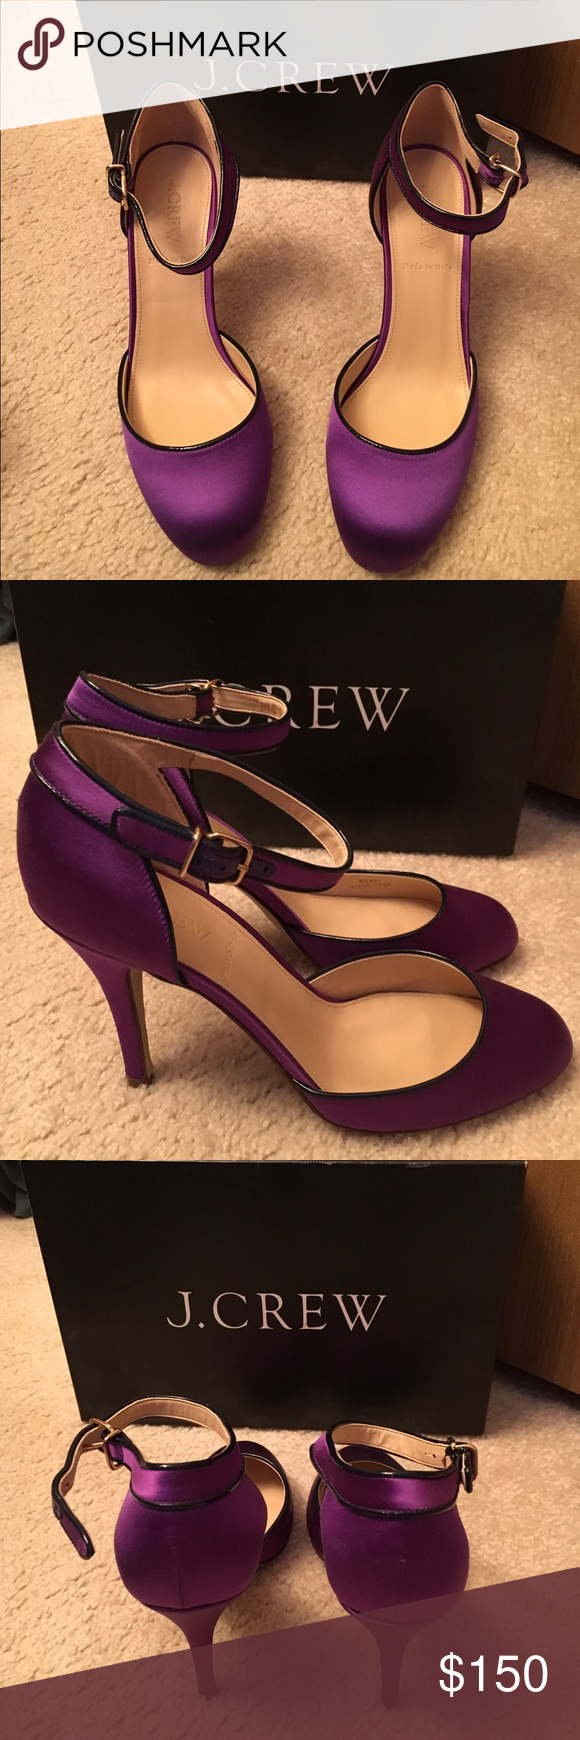 """J.Crew Ava satin pumps These are brand new heels. Never been worn, have been in the bags and in the box since I got them. I hoped to have worn them for a wedding but went with different shoes. These are so beautiful and so nice. They are satin bold purple 3 3/4"""" heels. Made in Italy. J.crew Shoes Heels"""